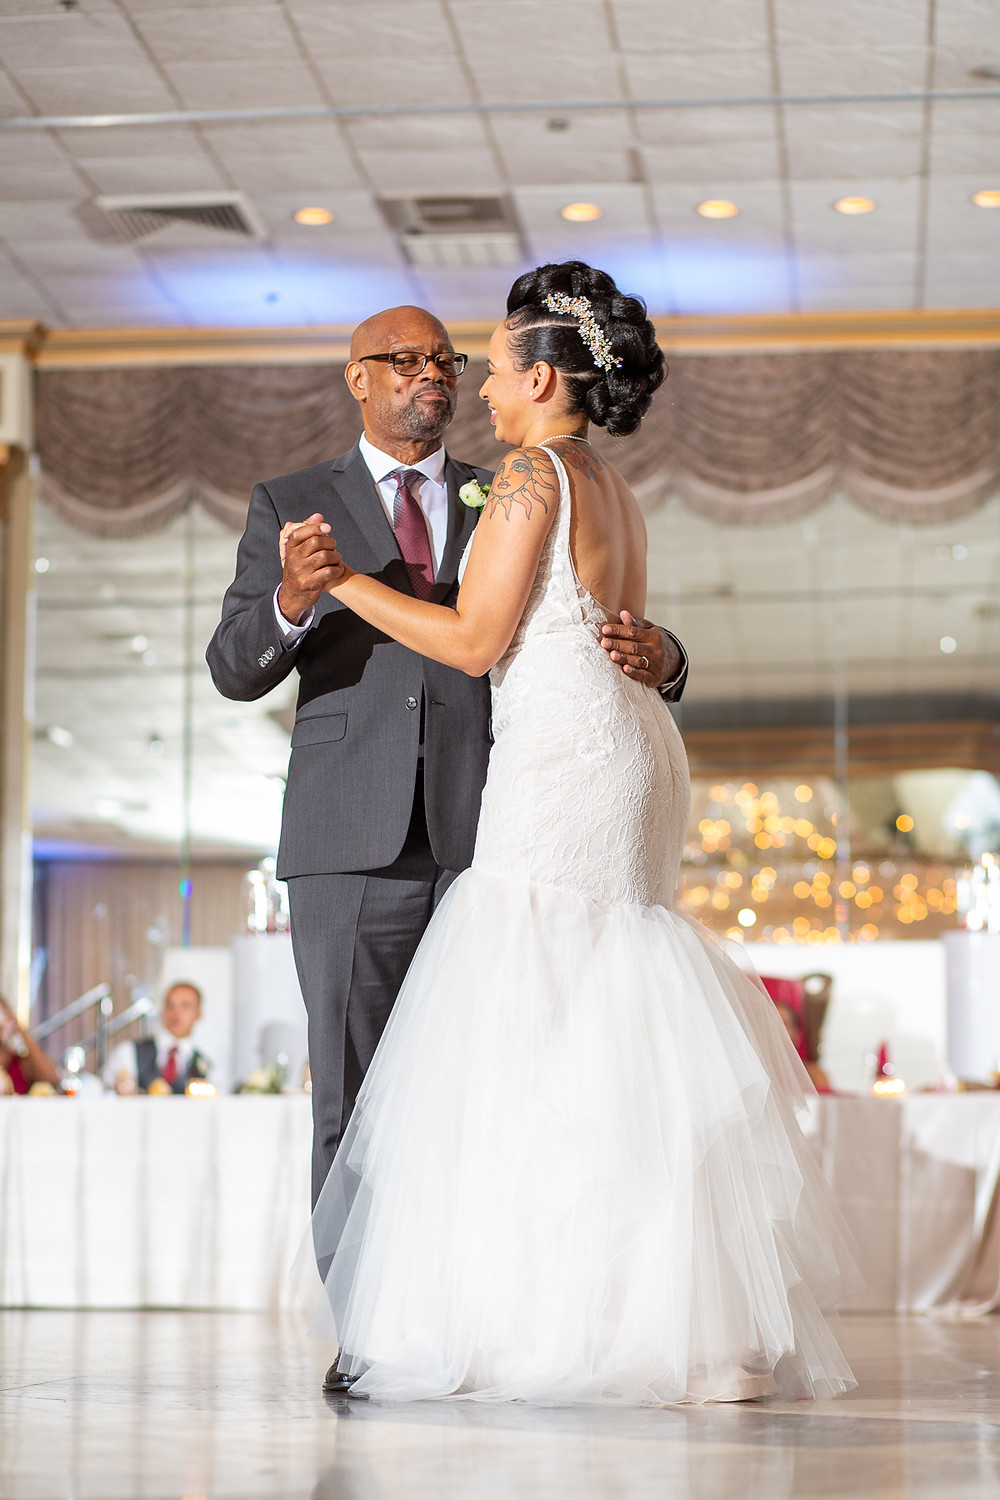 Bride and Father-of-the-Bride dance during the wedding reception at Martin's Crosswinds in Greenbelt, Maryland.